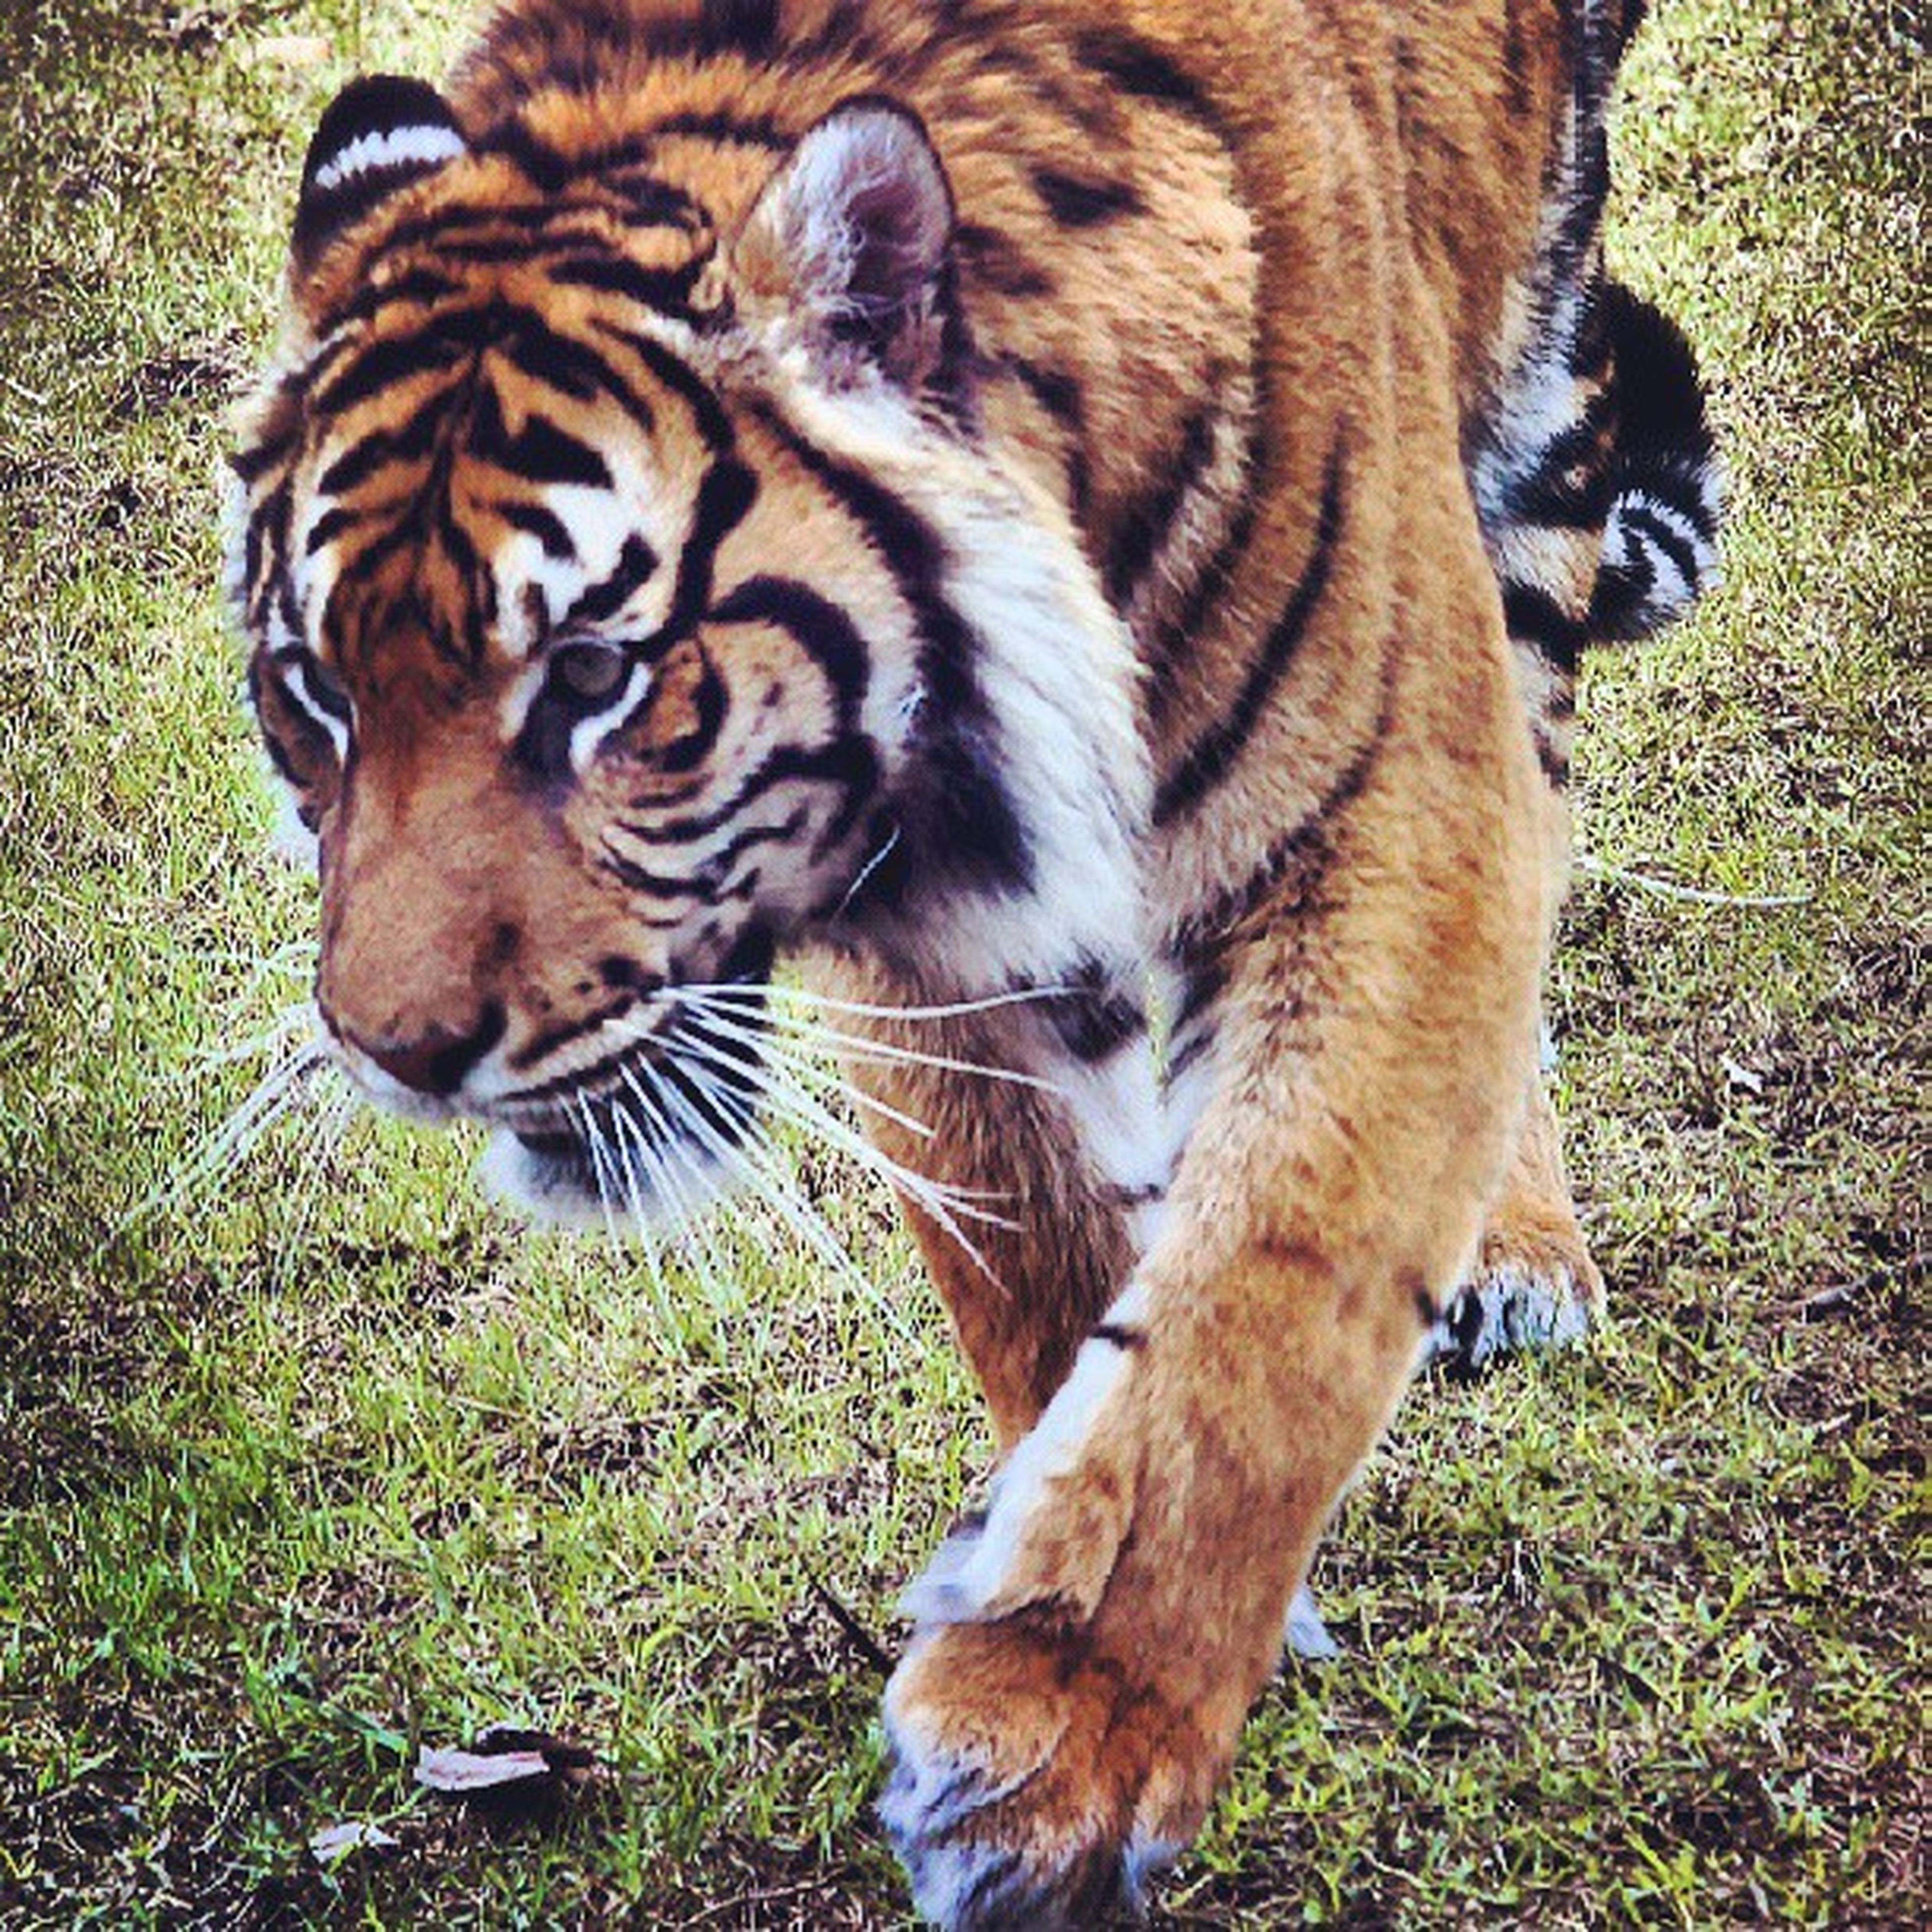 animal themes, one animal, animals in the wild, wildlife, mammal, animal markings, tiger, grass, field, striped, full length, two animals, nature, side view, natural pattern, outdoors, day, no people, standing, high angle view